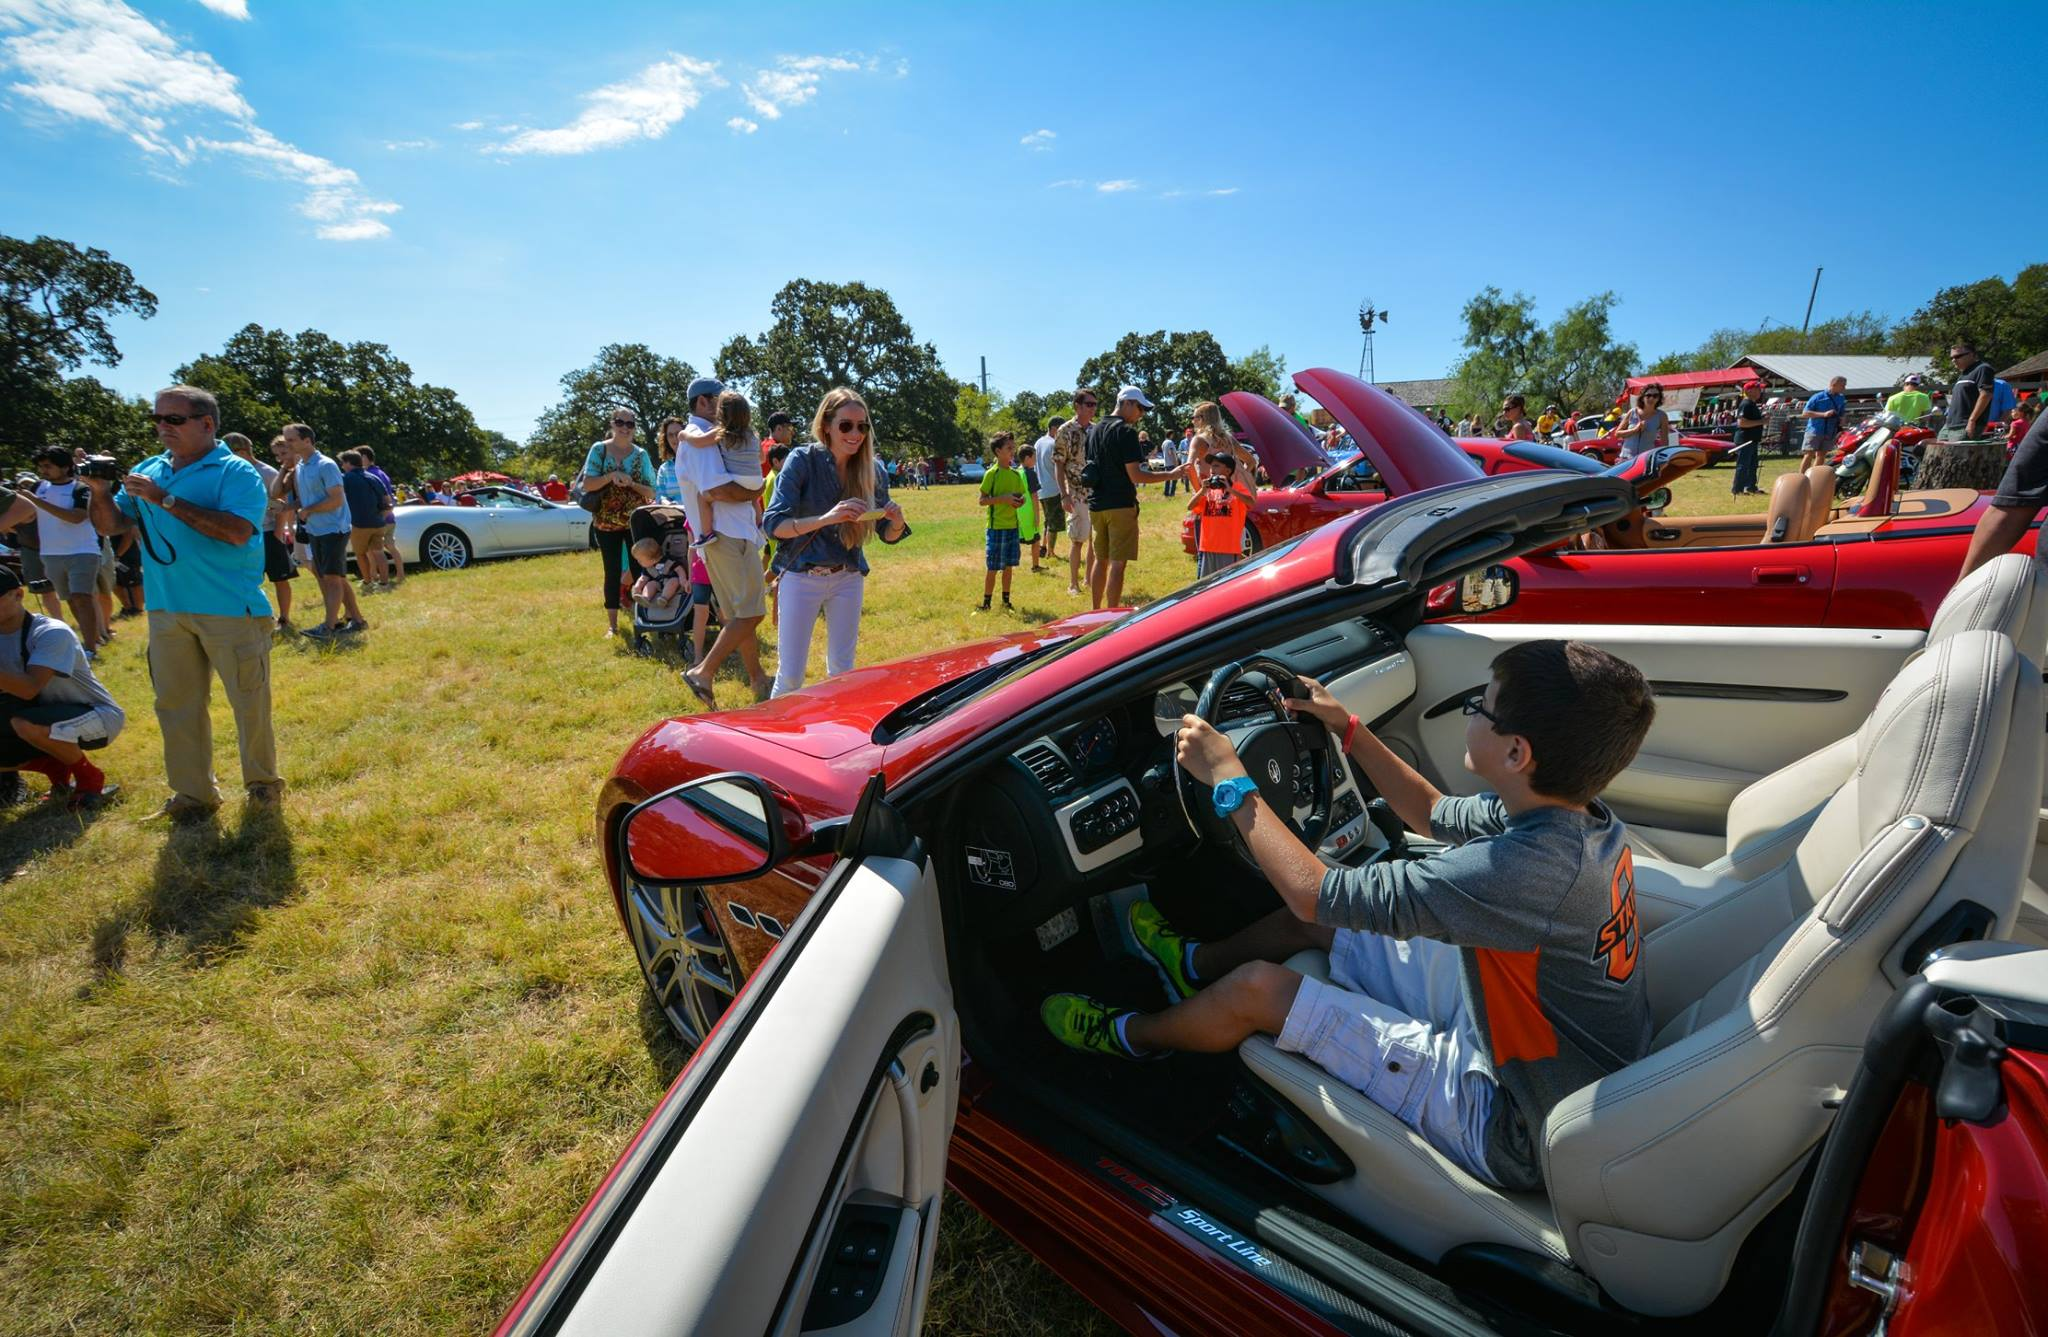 What Will Be Your Favorite Car at Next Year's Italian Car Fest?